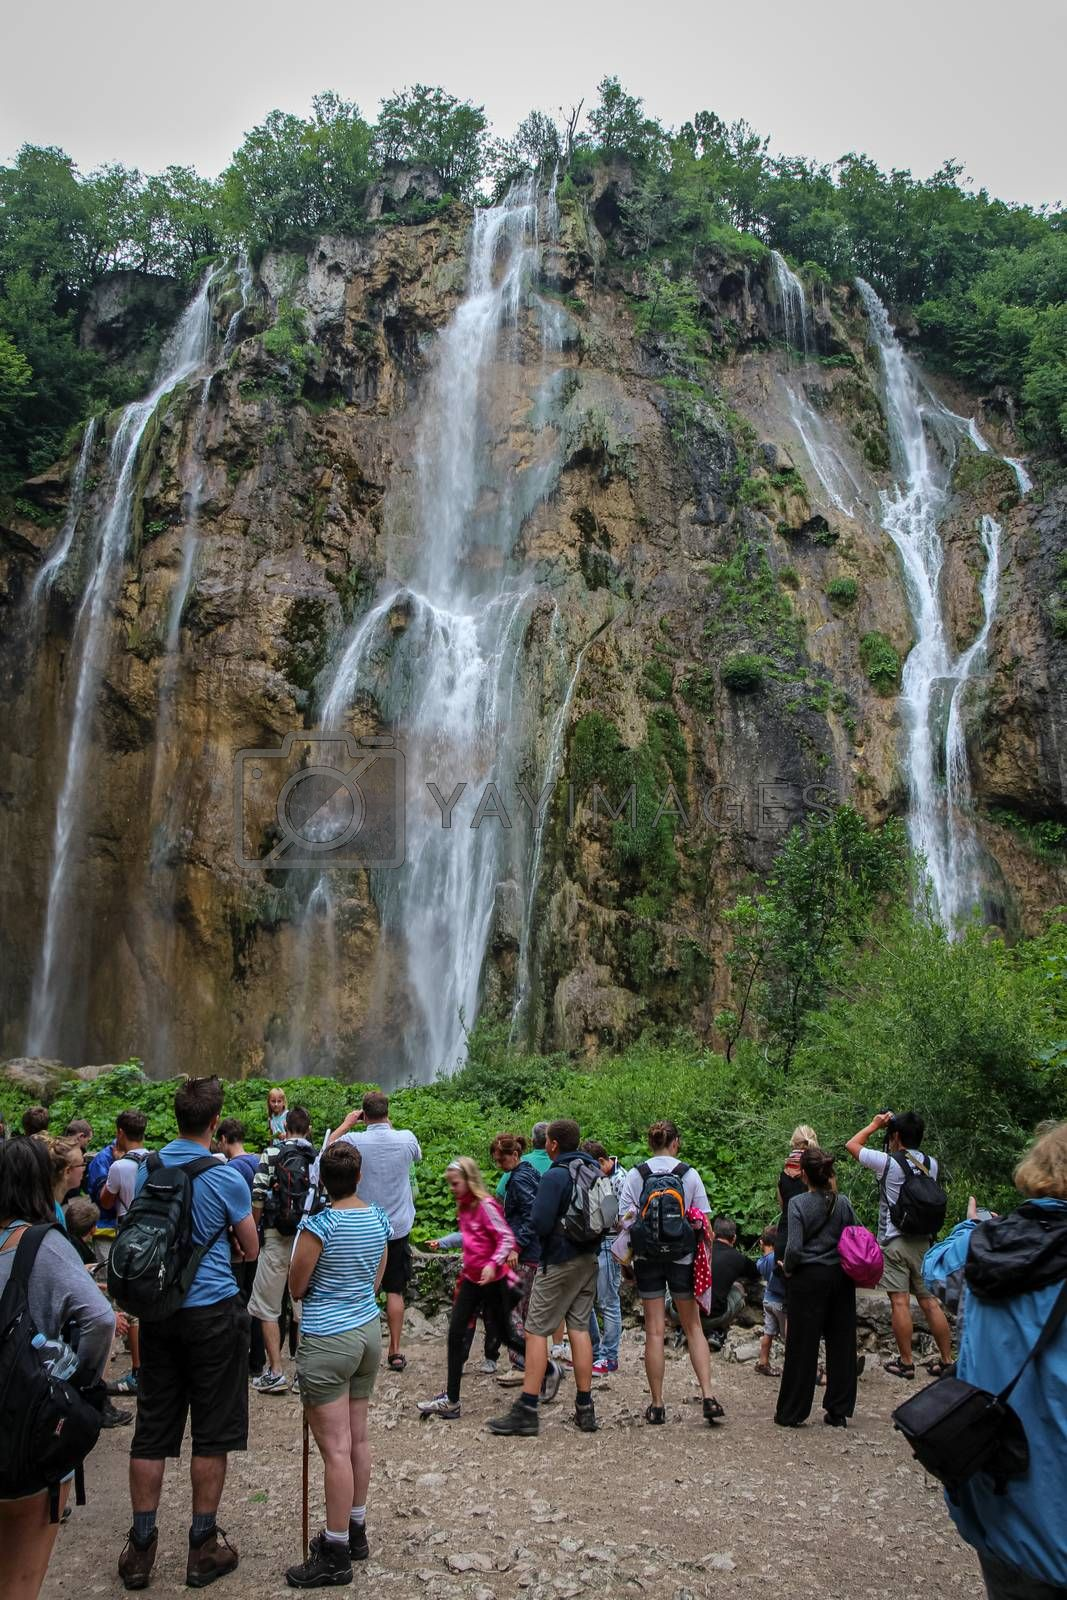 Plitvice Lakes, Croatia - July 14th 2018: Tourists overcrowding at a large waterfall at Plitvice Lakes, Croatia